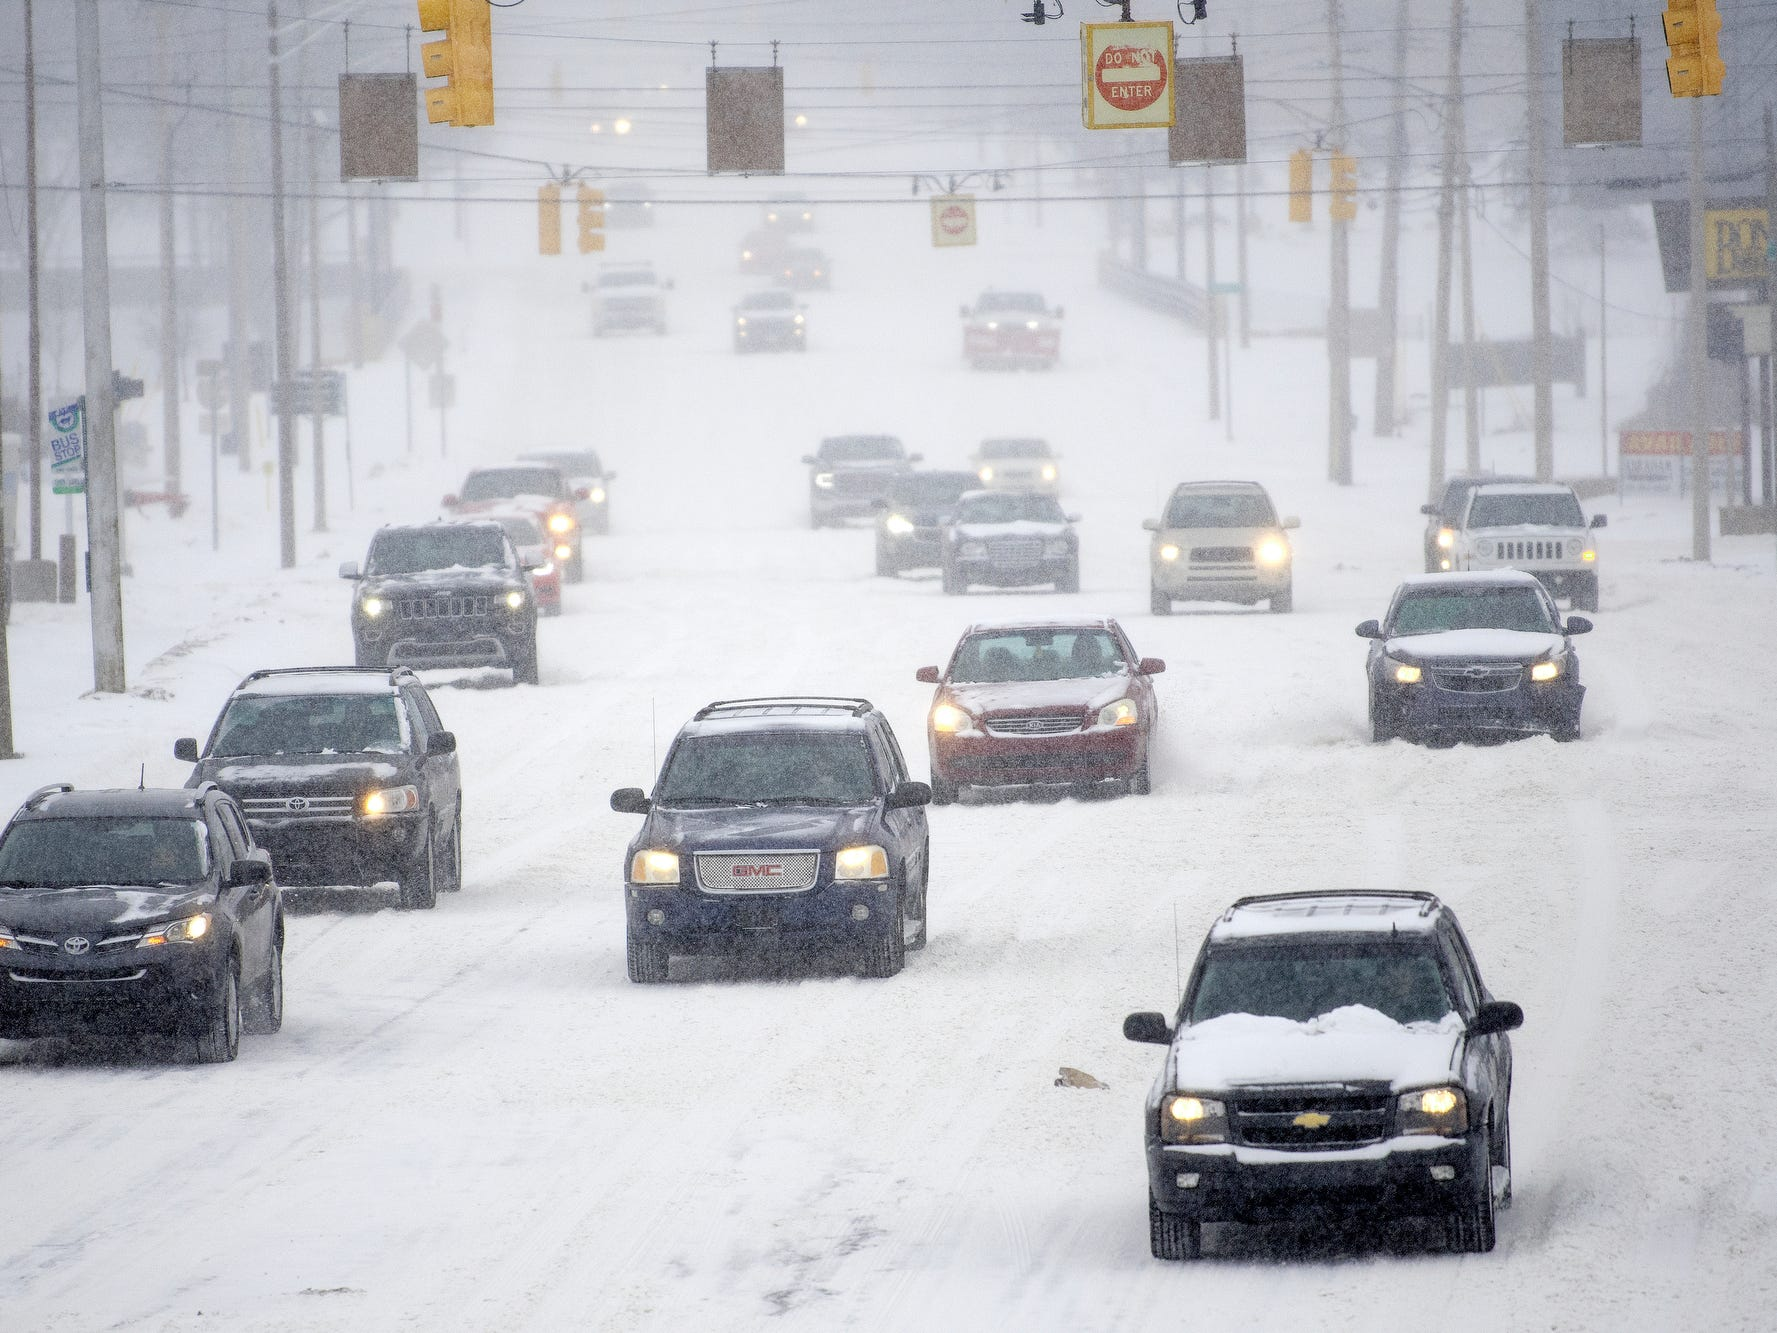 Traffic flows eastbound along Saginaw Street at the Larch Street intersection on Monday, Jan. 28, 2019, in Lansing. A major snow storm hit the region Monday and will be followed by days of bitter, life-threatening cold.